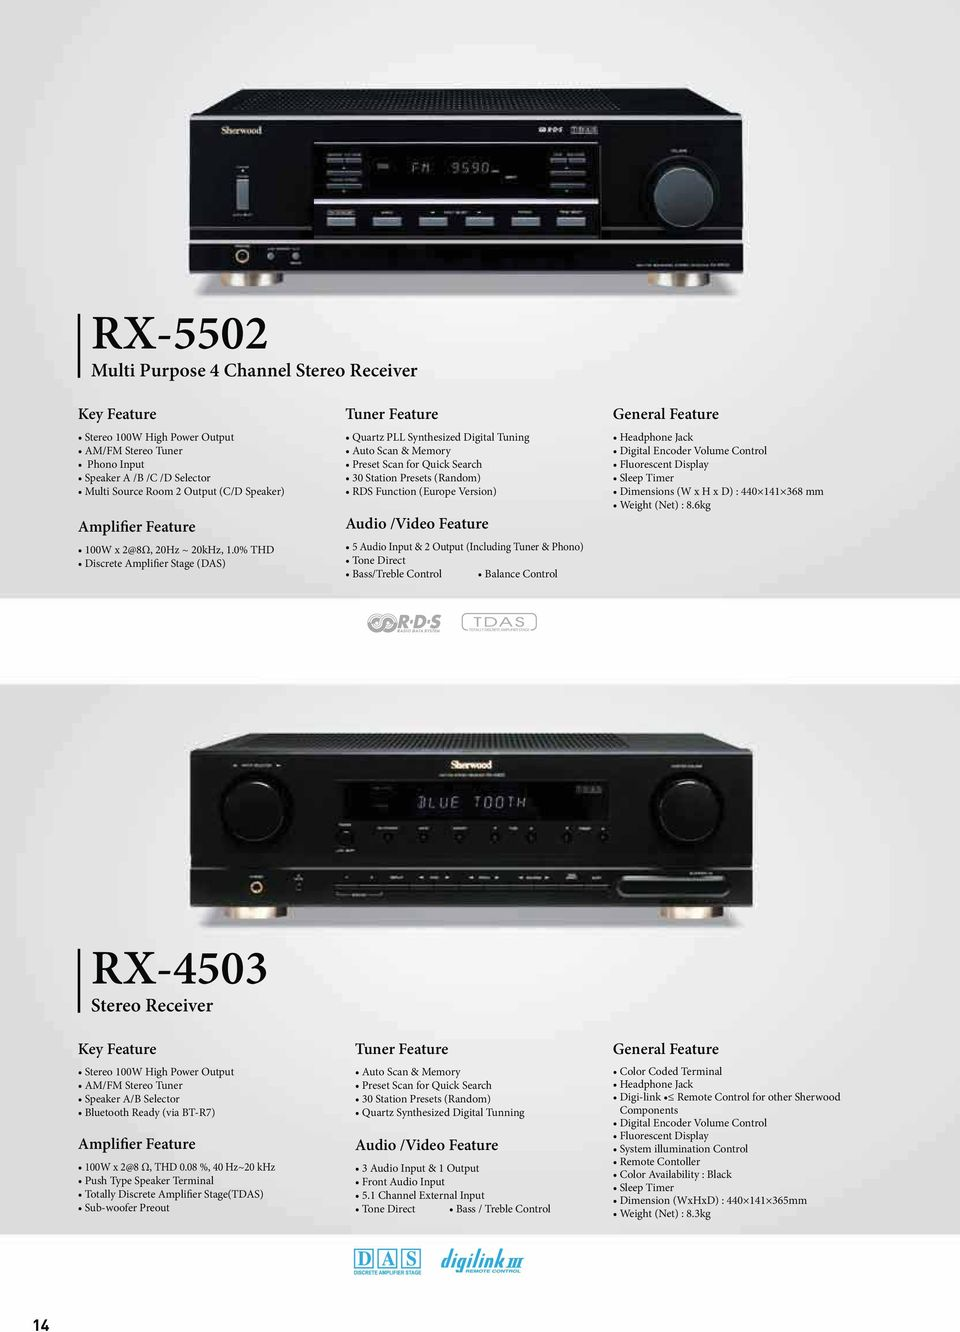 Output (Including Tuner & Phono) RX-4503 Stereo Receiver